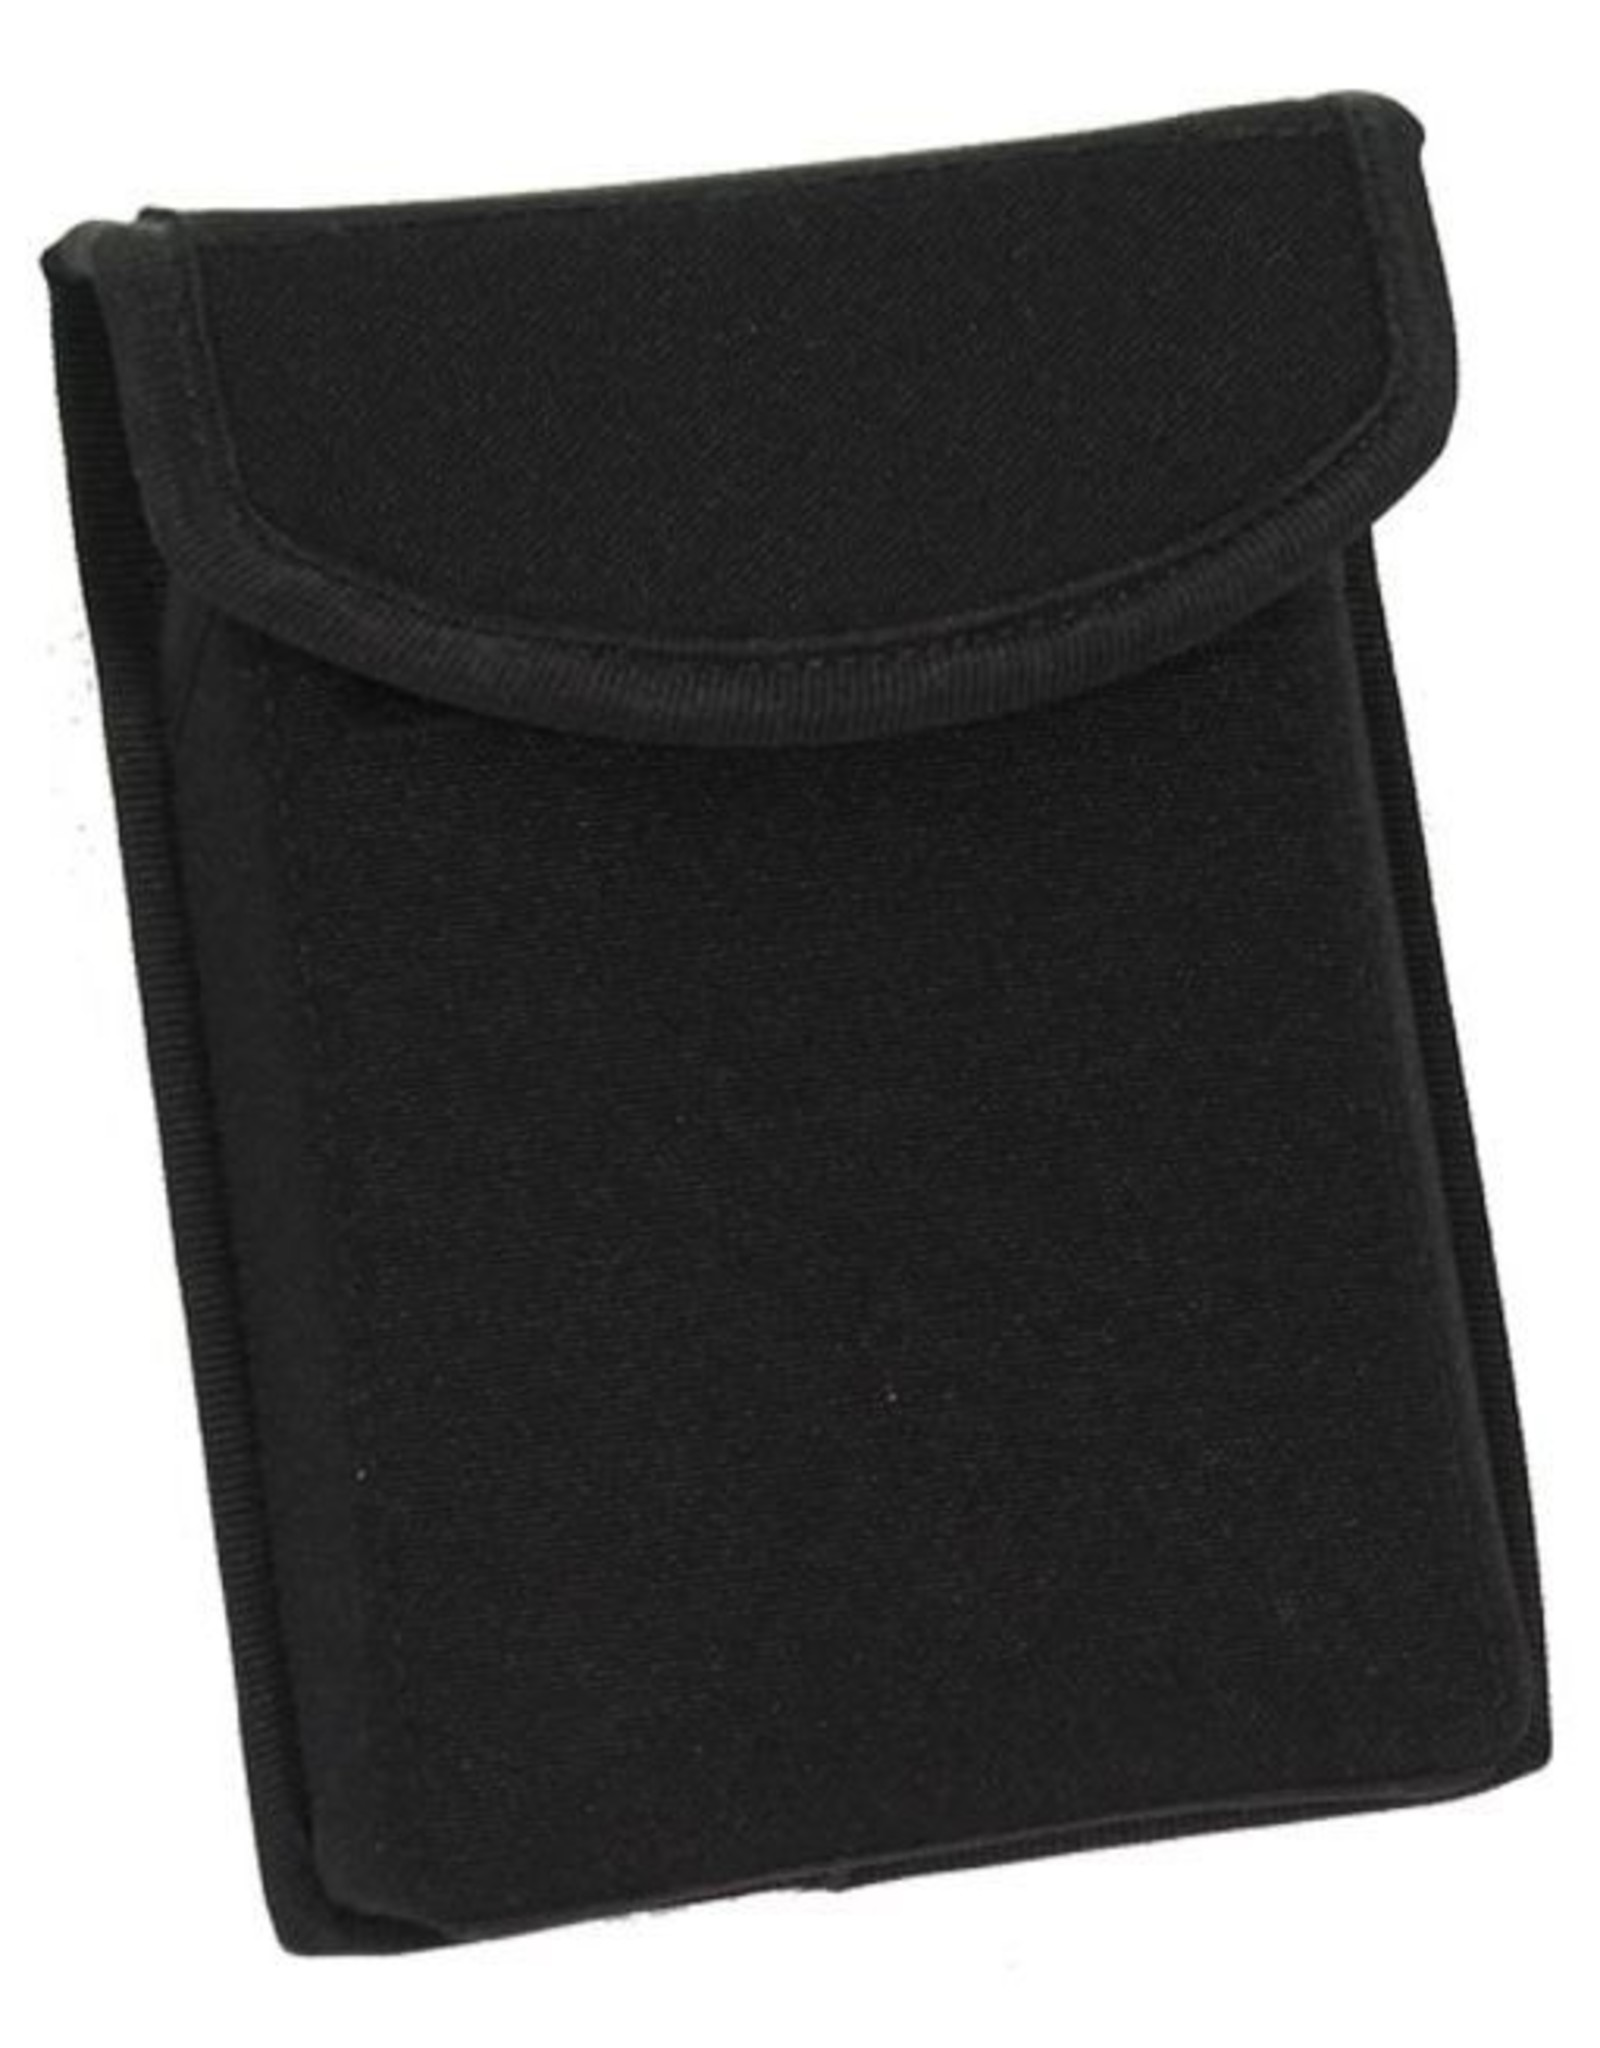 """HI-TEC INTERVENTION NOTE PAD CARRYING CASE FOR 4""""""""X5""""""""PAD WITH BELT LOOP ON BACK - HT571"""